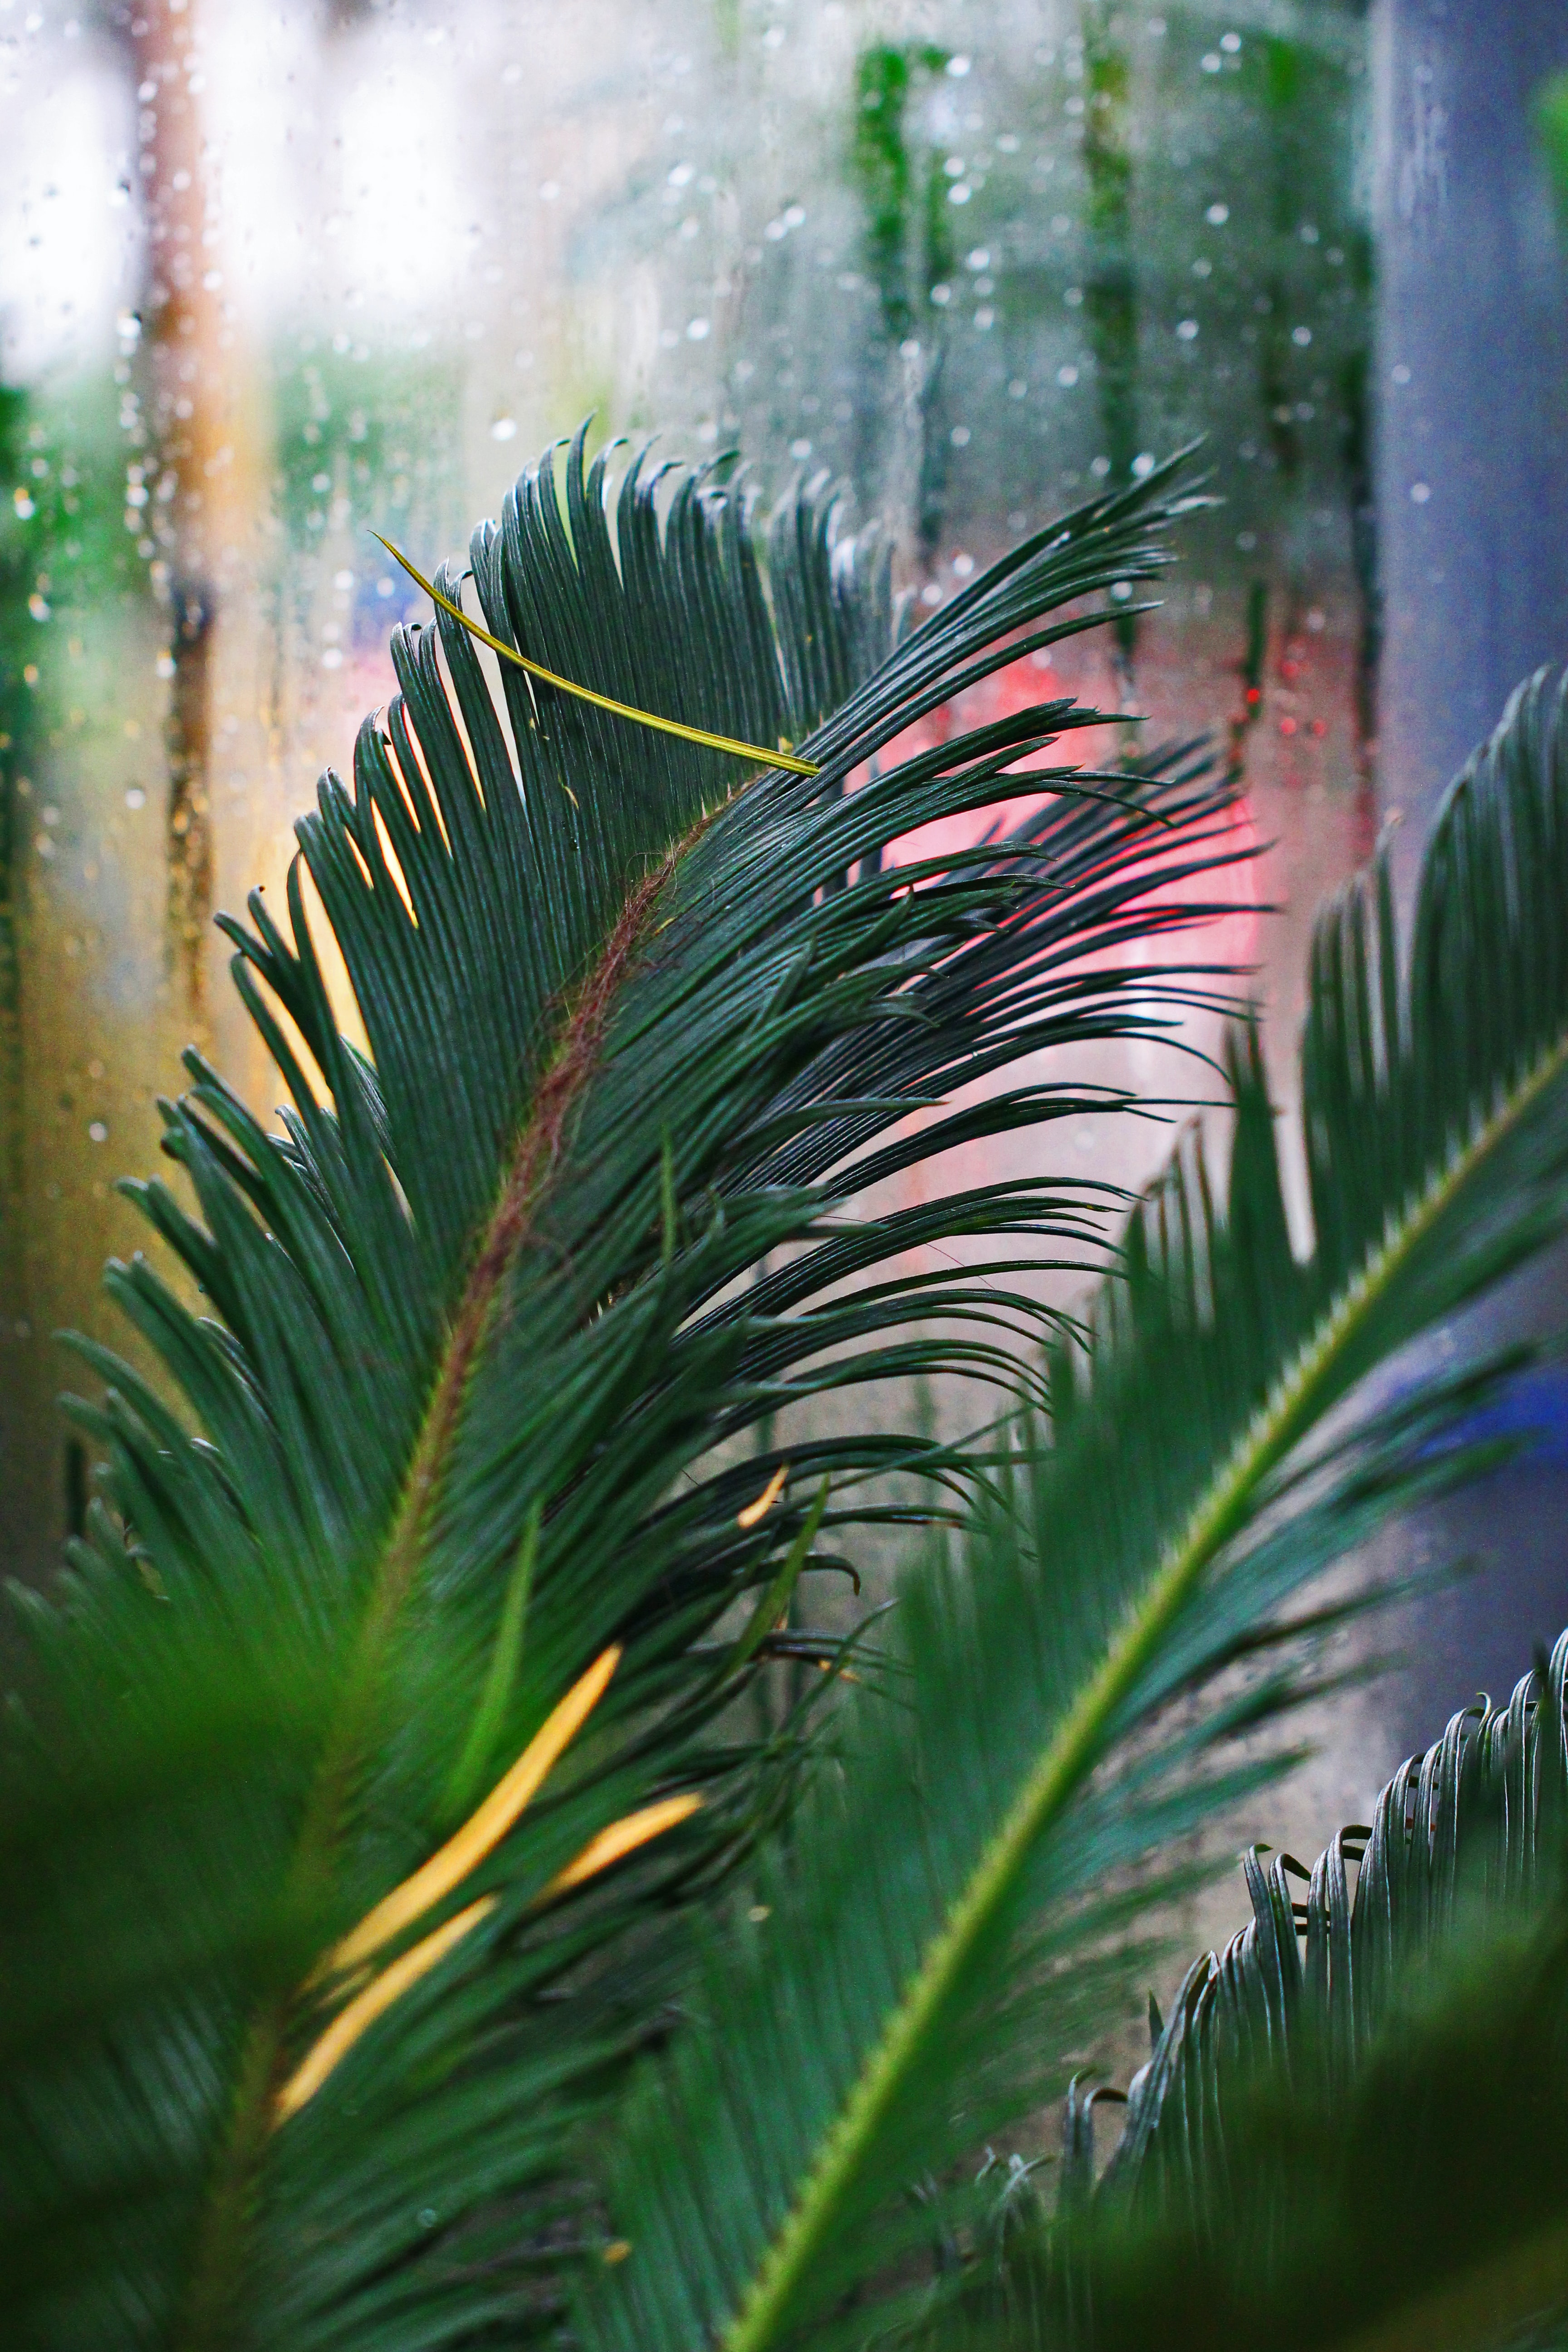 green sago palm tree closeup photography